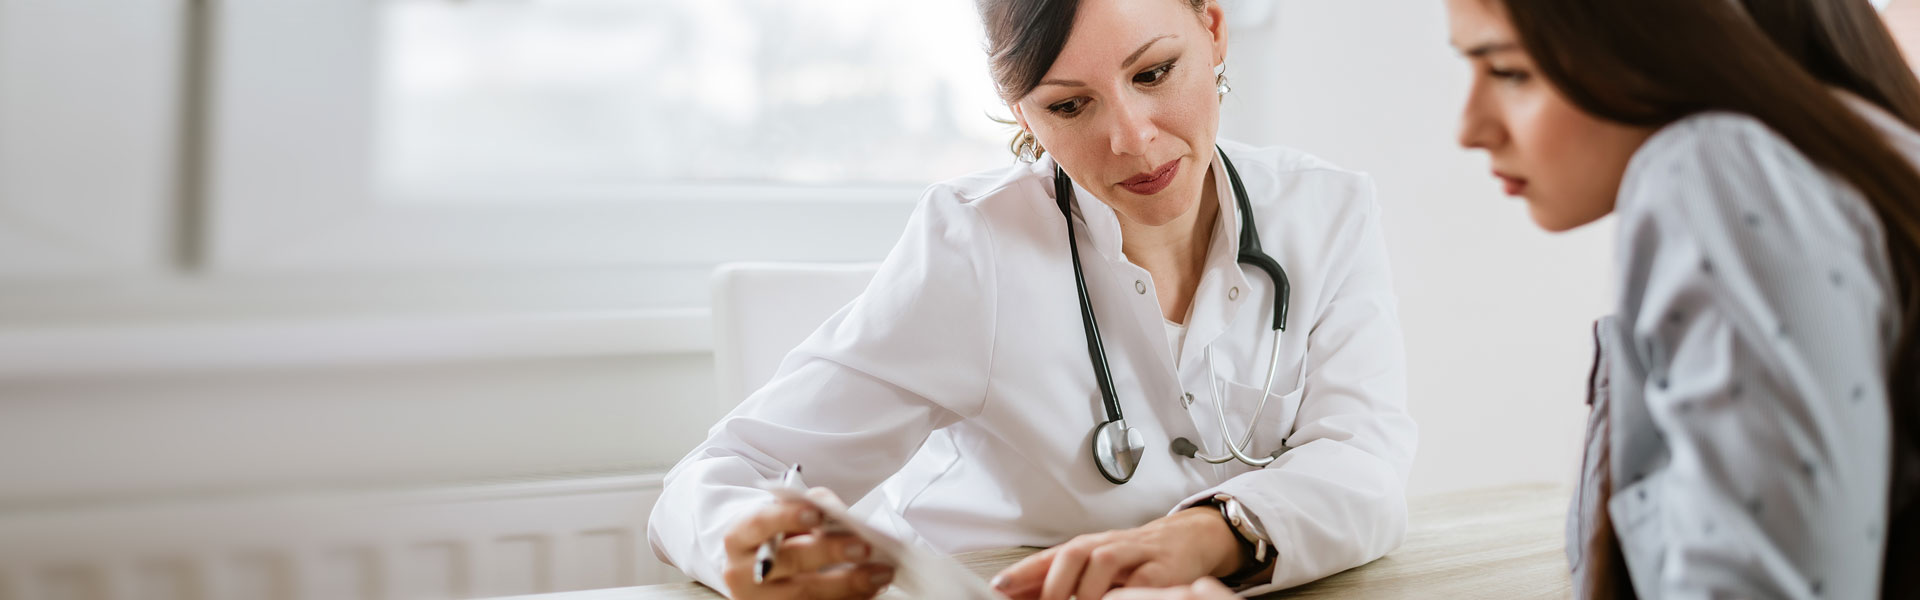 female doctor consulting with patient